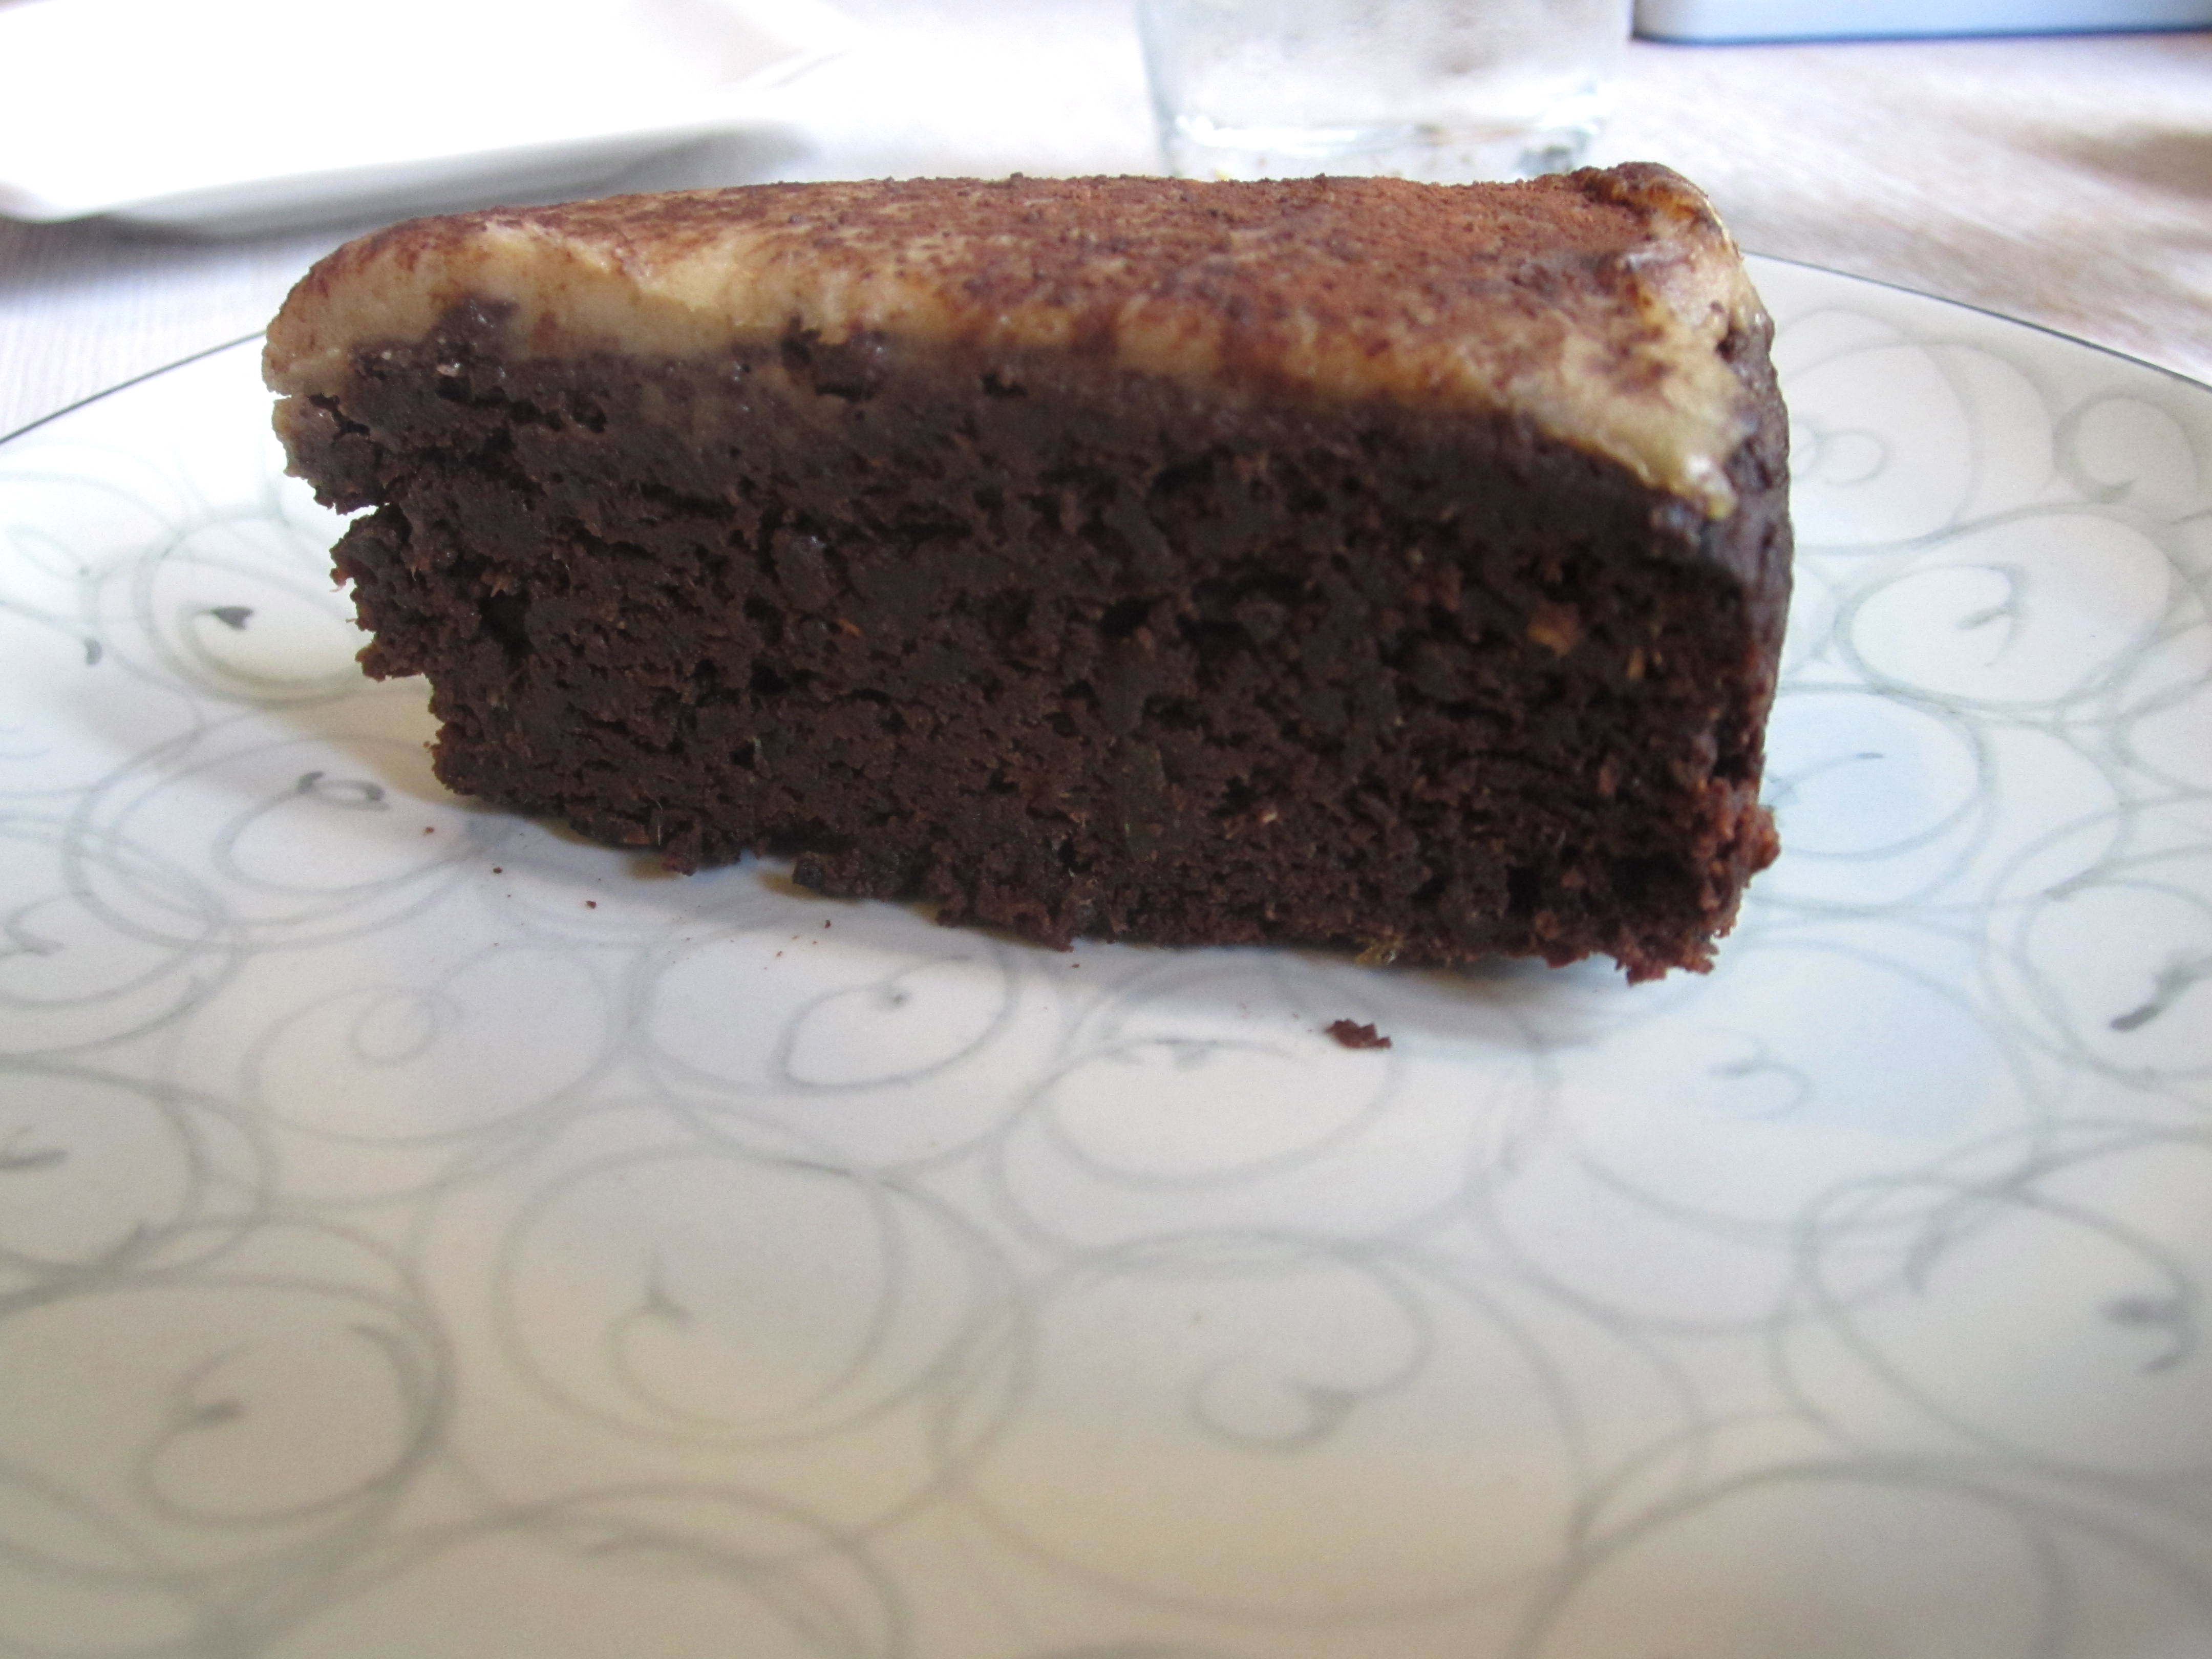 Grassroots Pantry vegan chocolate cake